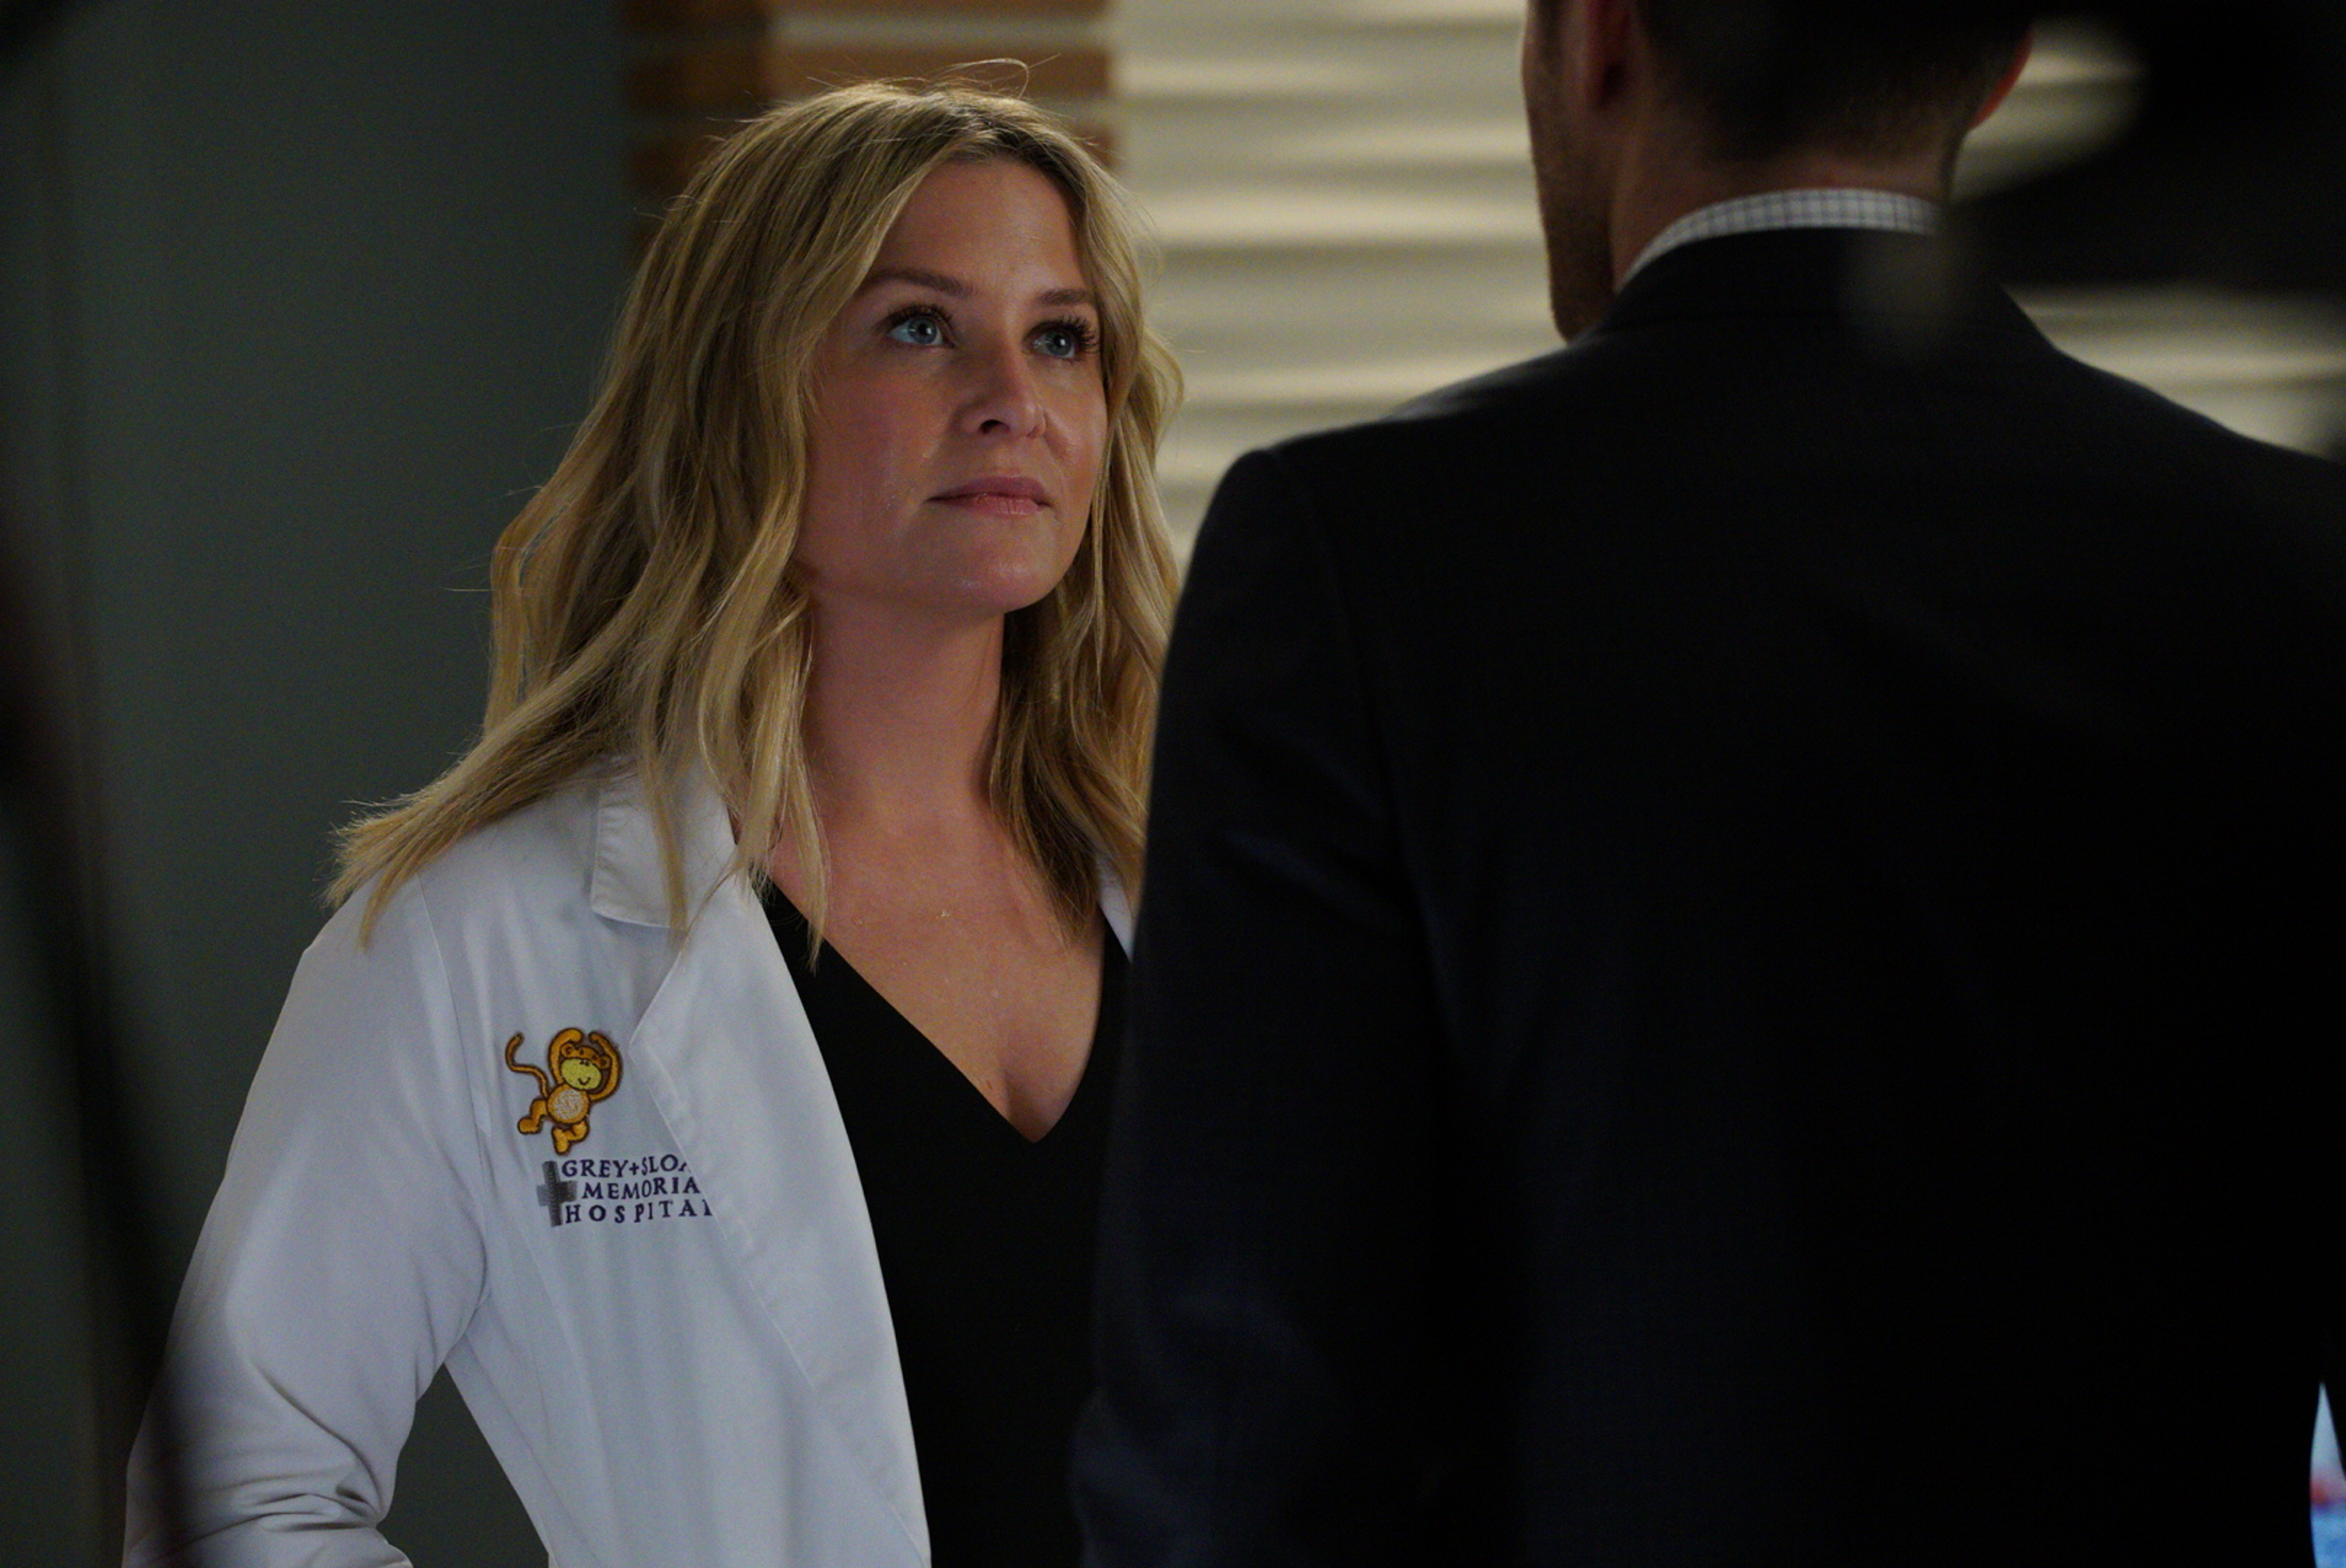 """GREY'S ANATOMY - """"Four Seasons in One Day"""" - Jo finally faces her estranged, abusive husband Paul Stadler, while Grey Sloan continues to work with the FBI after a hacker has compromised the hospital's computer system, on the midseason return of """"Grey's Anatomy,"""" THURSDAY, JAN. 18 (8:00-9:00 p.m. EST), on The ABC Television Network. (ABC/Richard Cartwright)JESSICA CAPSHAW"""